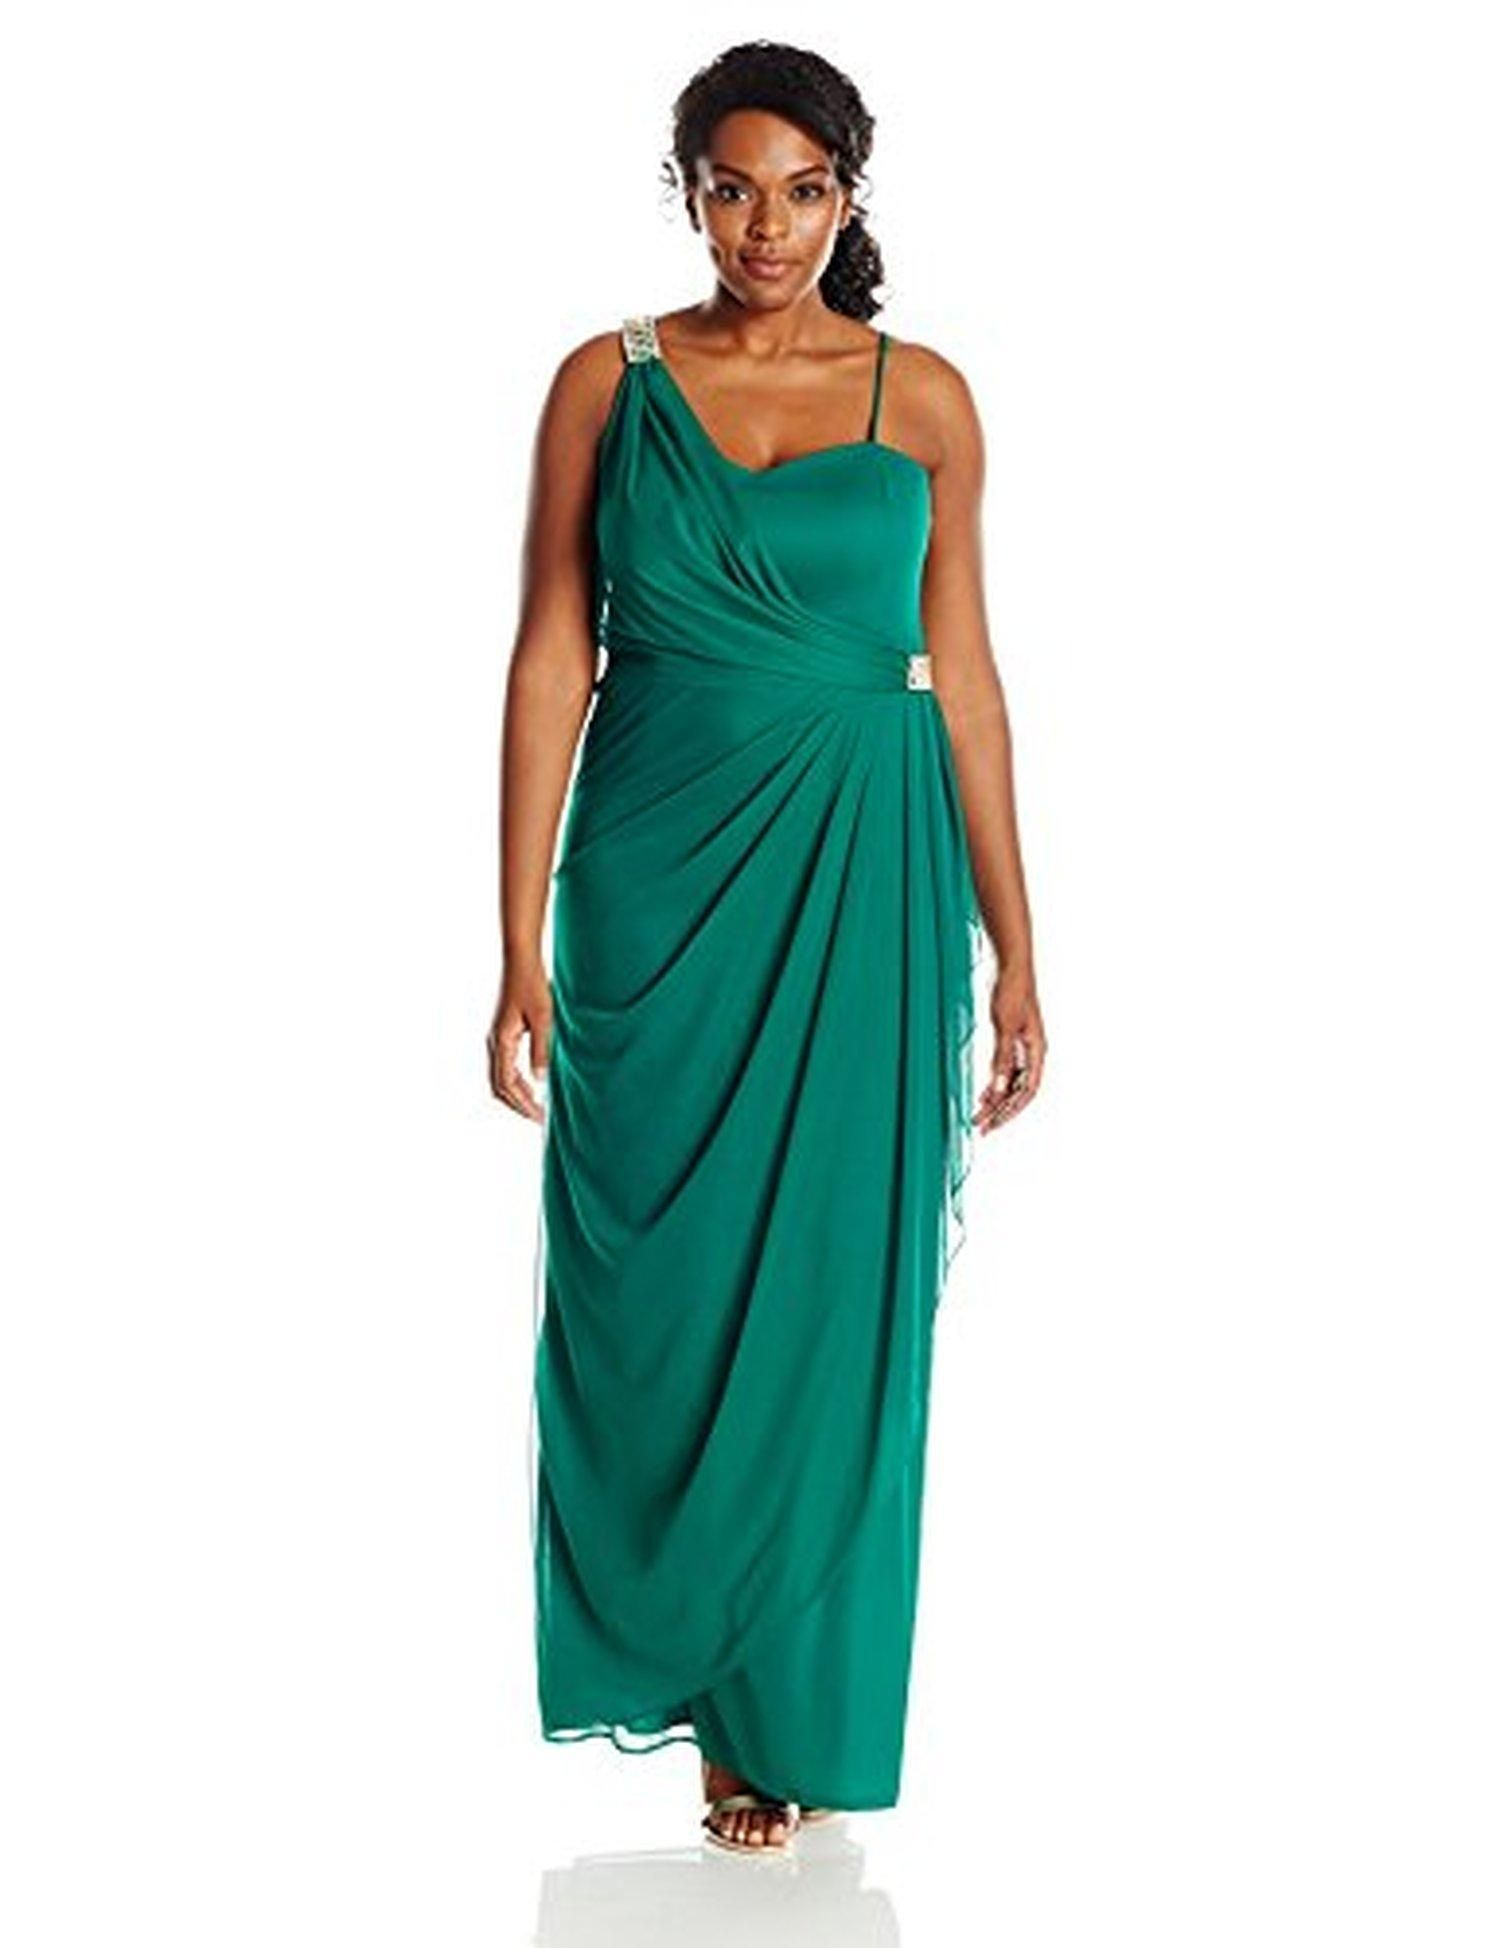 35ec8e8fd35d Xscape Women's Plus-Size Long 1 Shoulder Mesh with Trim, Emerald, 18W -  Brought to you by Avarsha.com